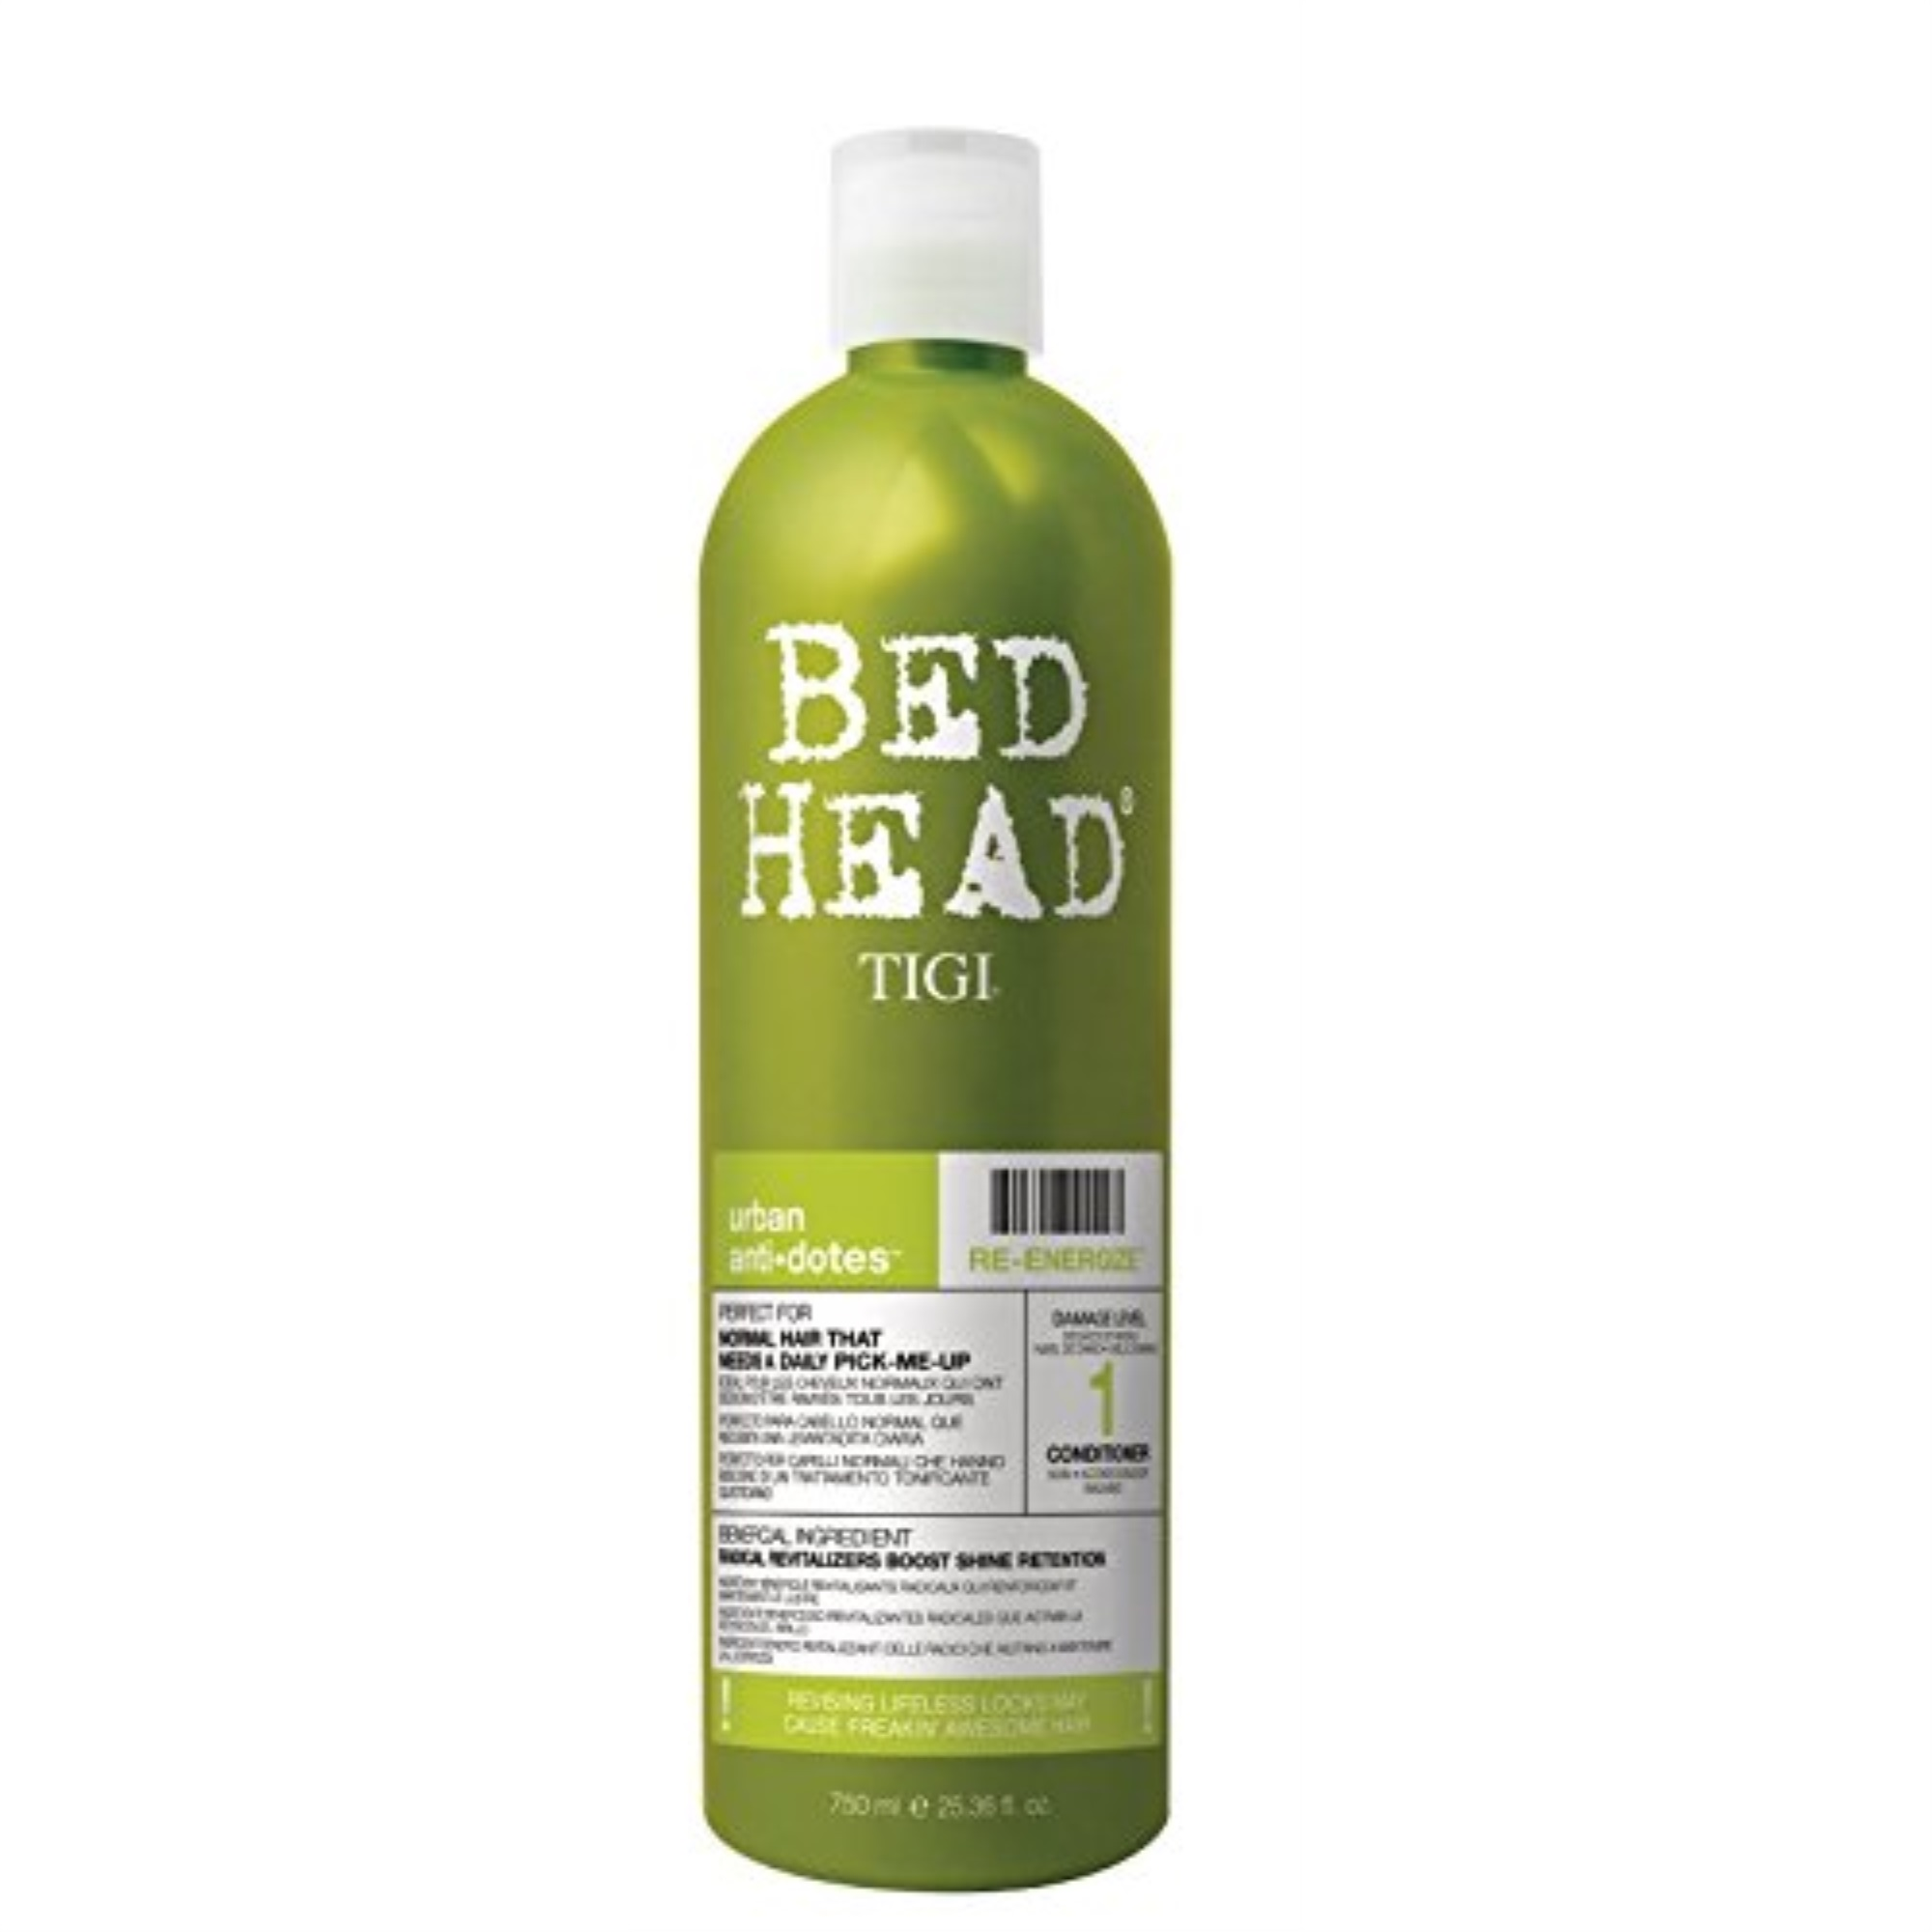 Tigi Bed Head Urban Antidotes Re-Energize Conditioner, 25.36 Fl Oz - image 2 of 2